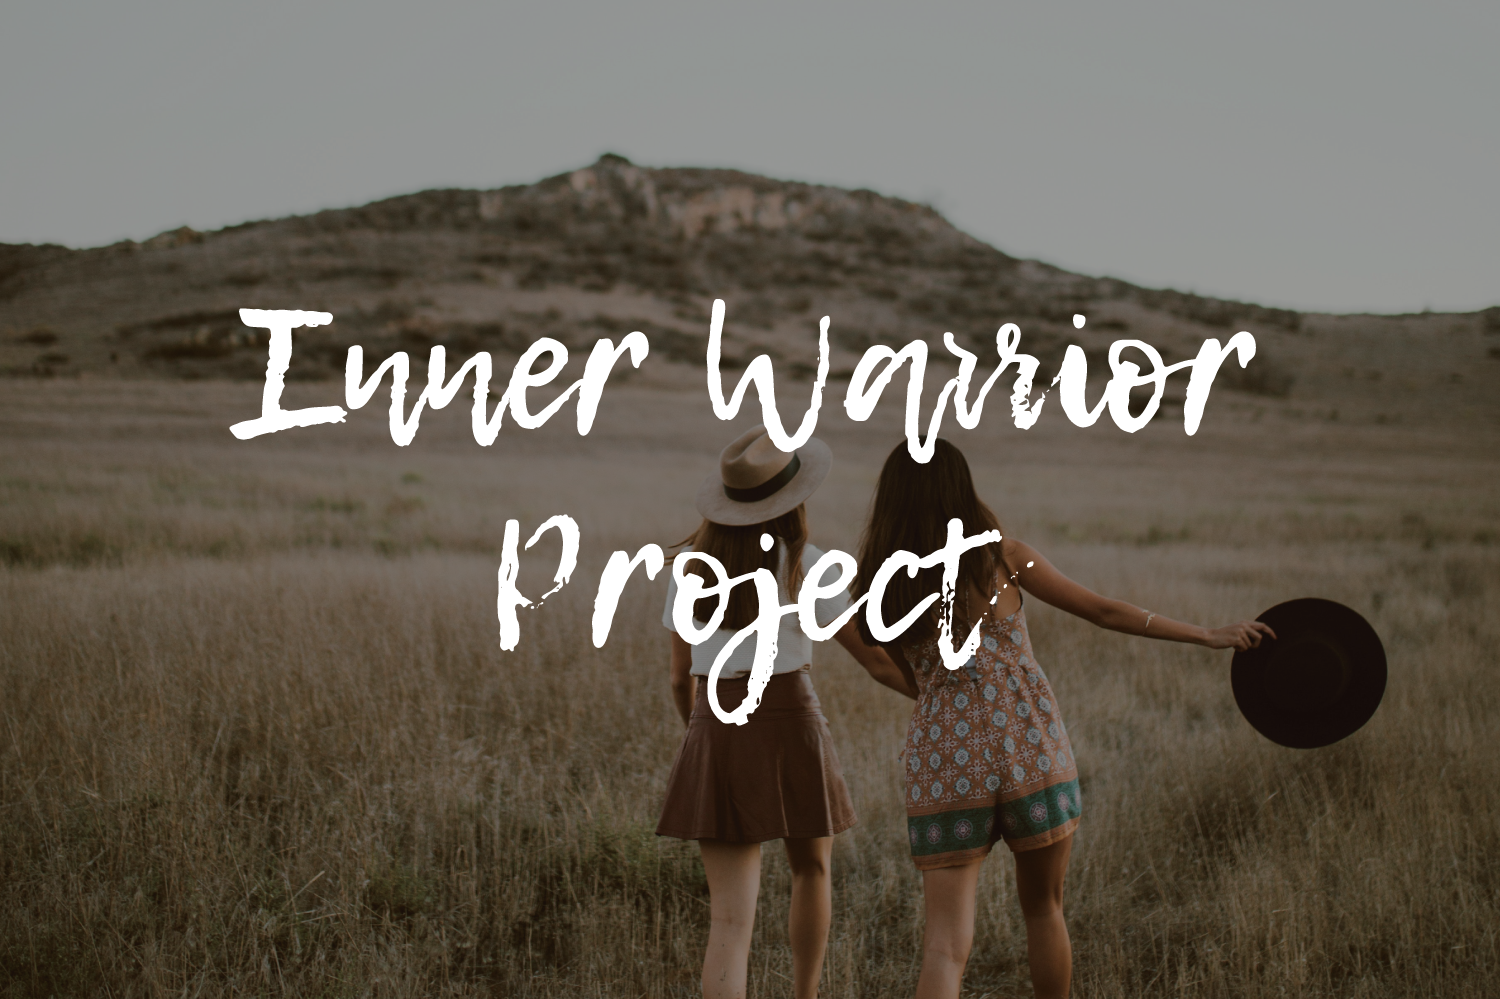 inner warrior project print